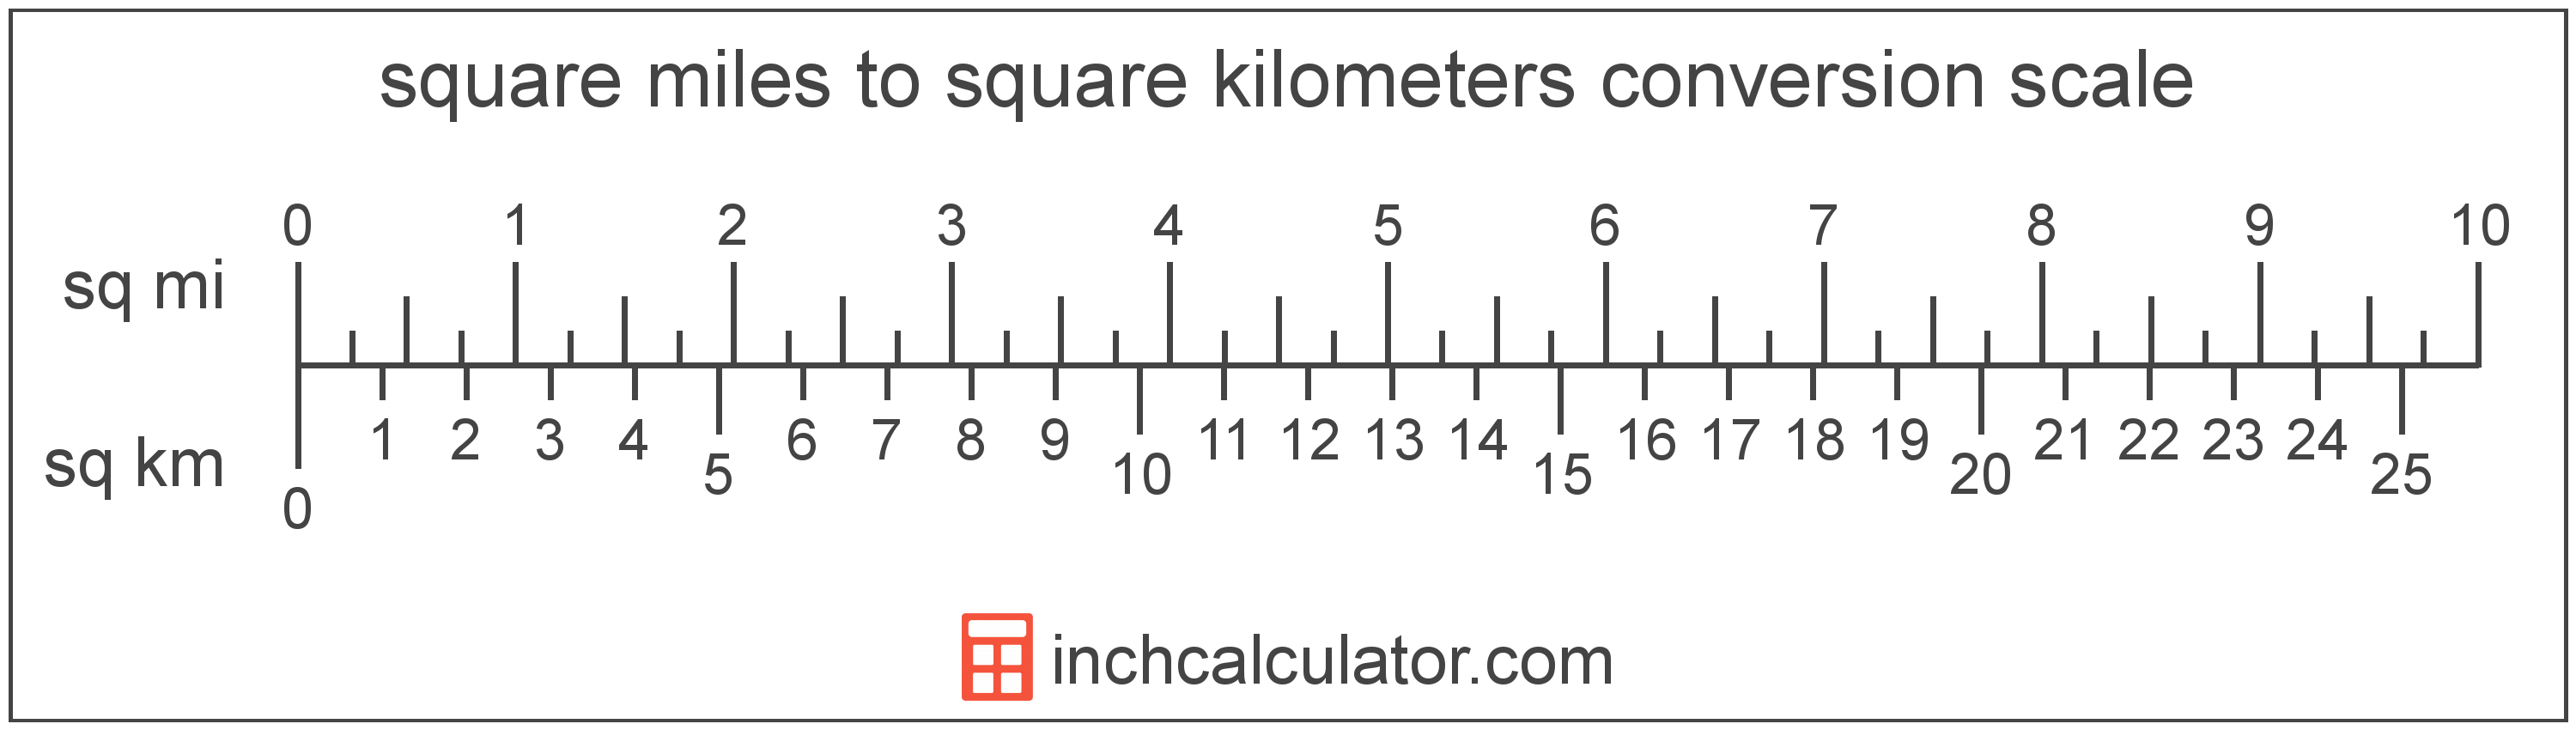 conversion scale showing square kilometers and equivalent square miles area values